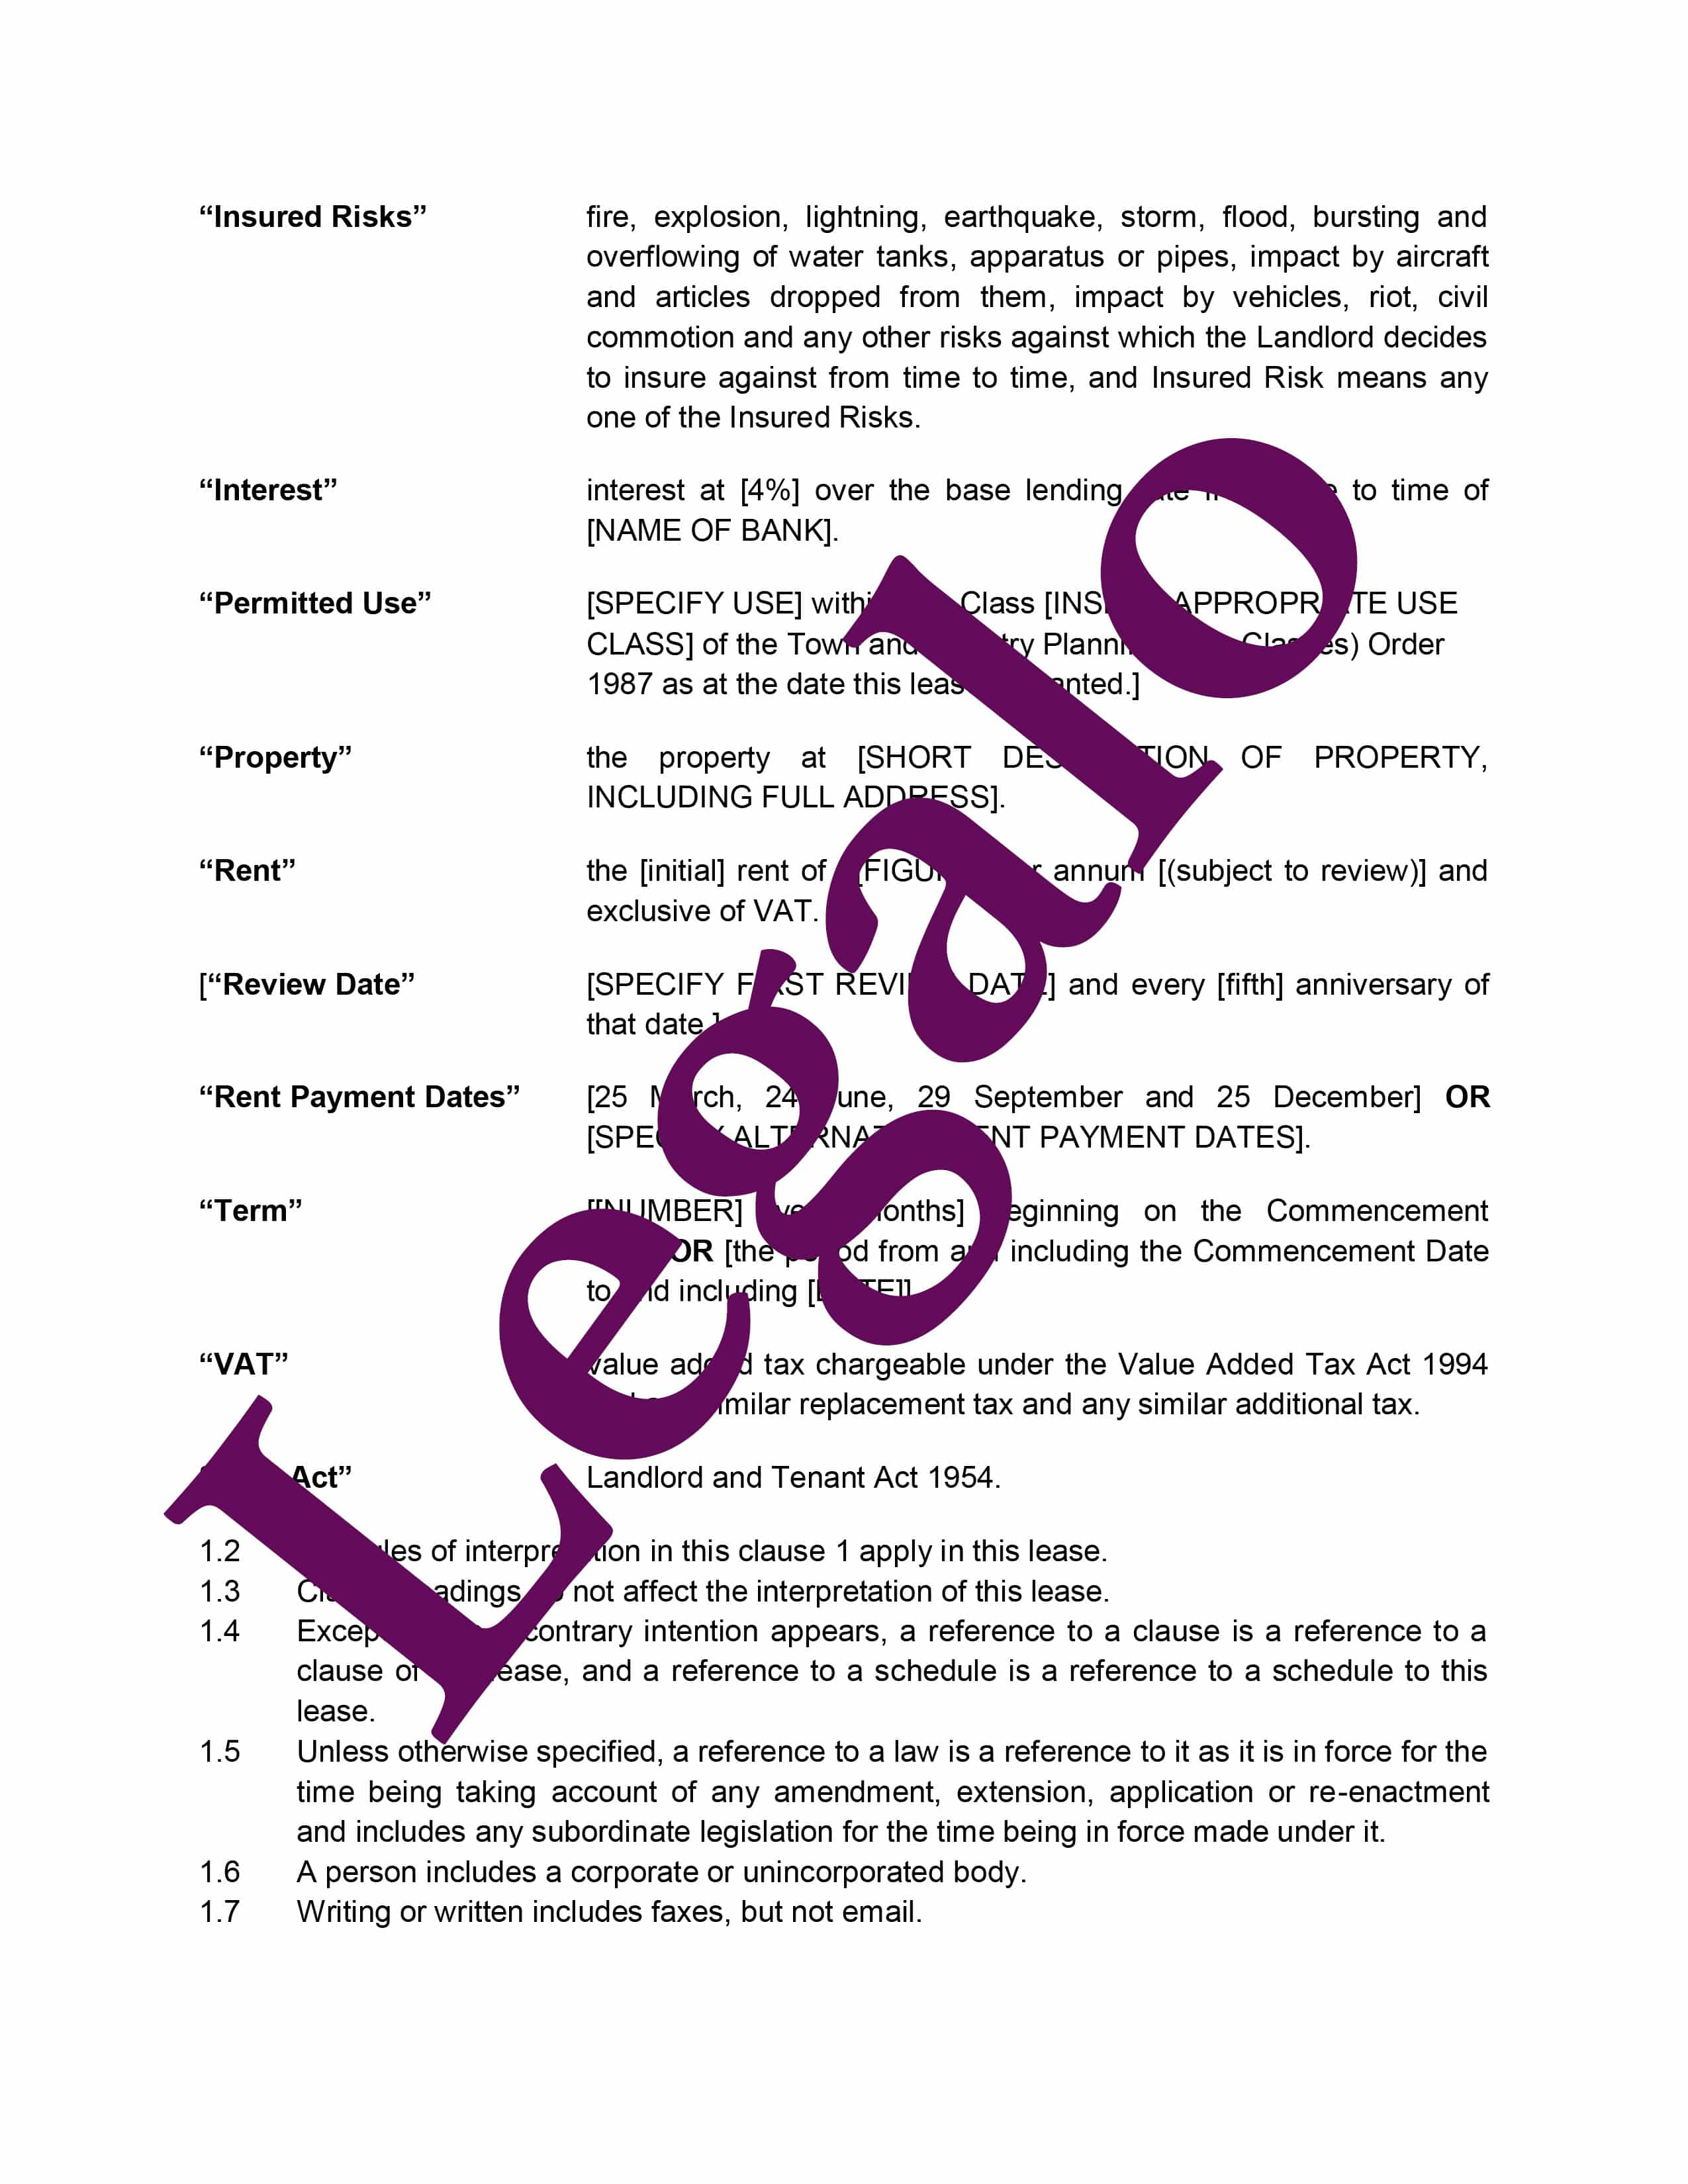 Commercial Lease Agreement Template2 image